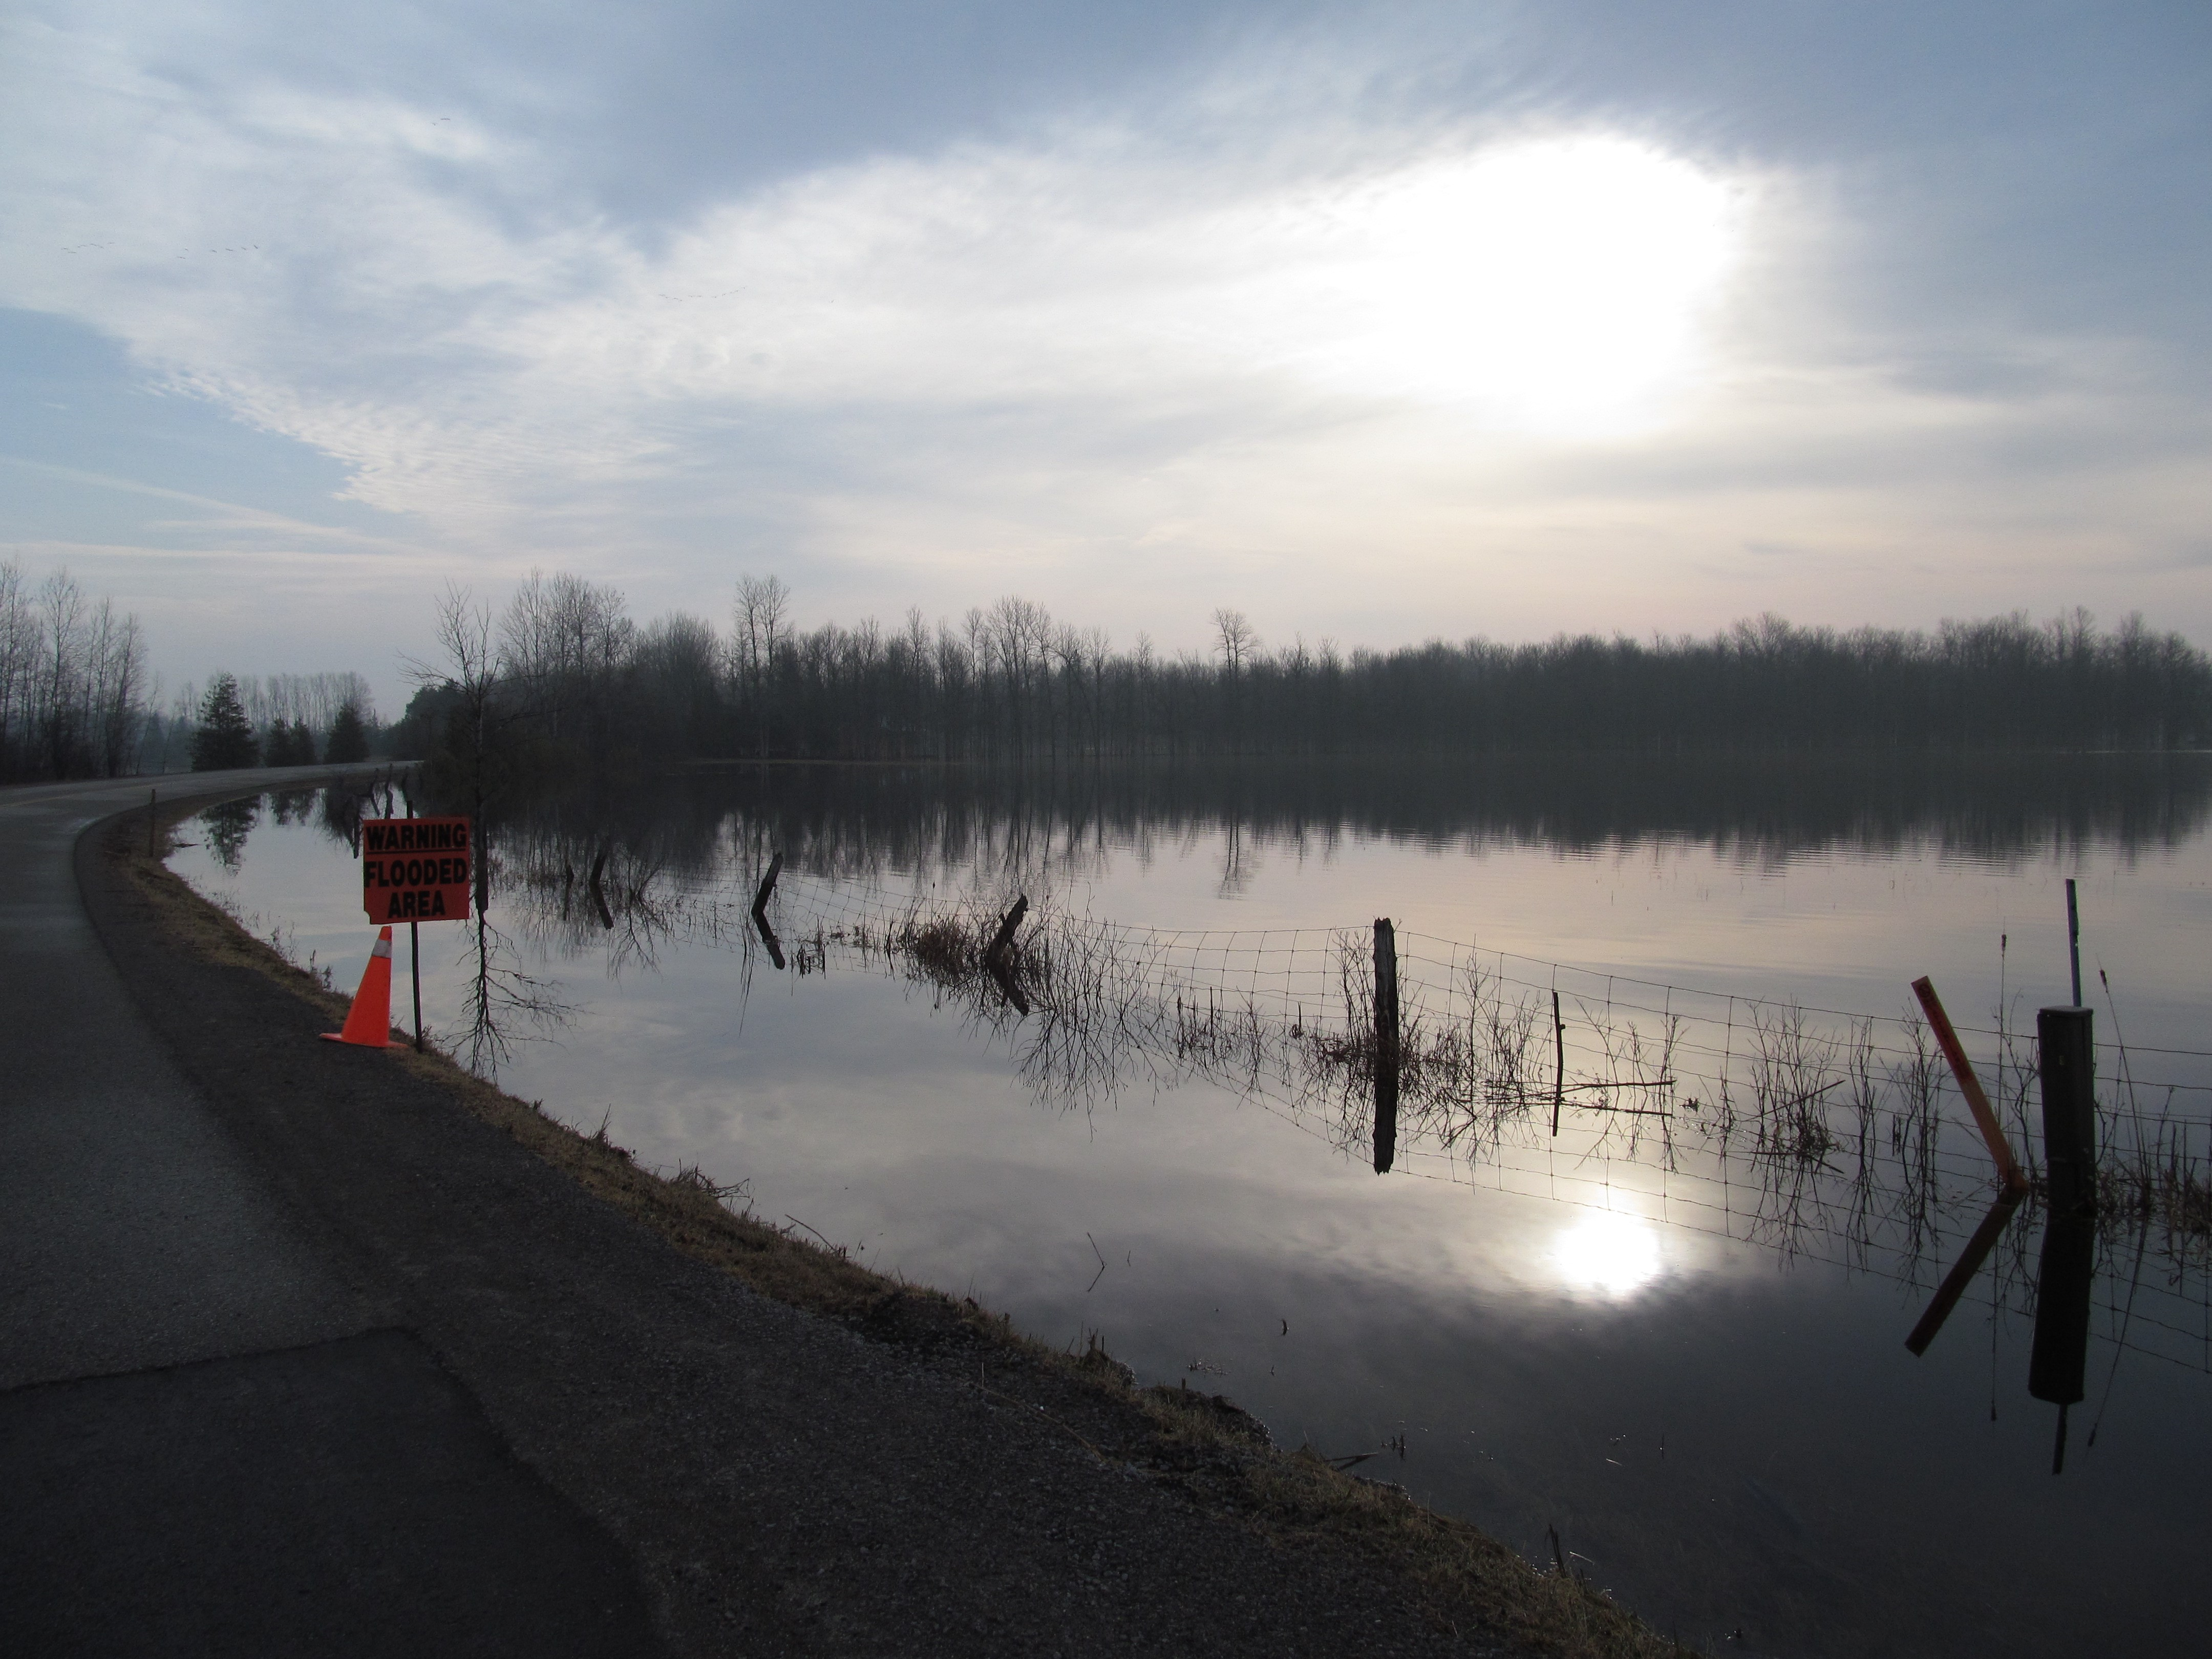 kemptville creek, flooded near the roadside